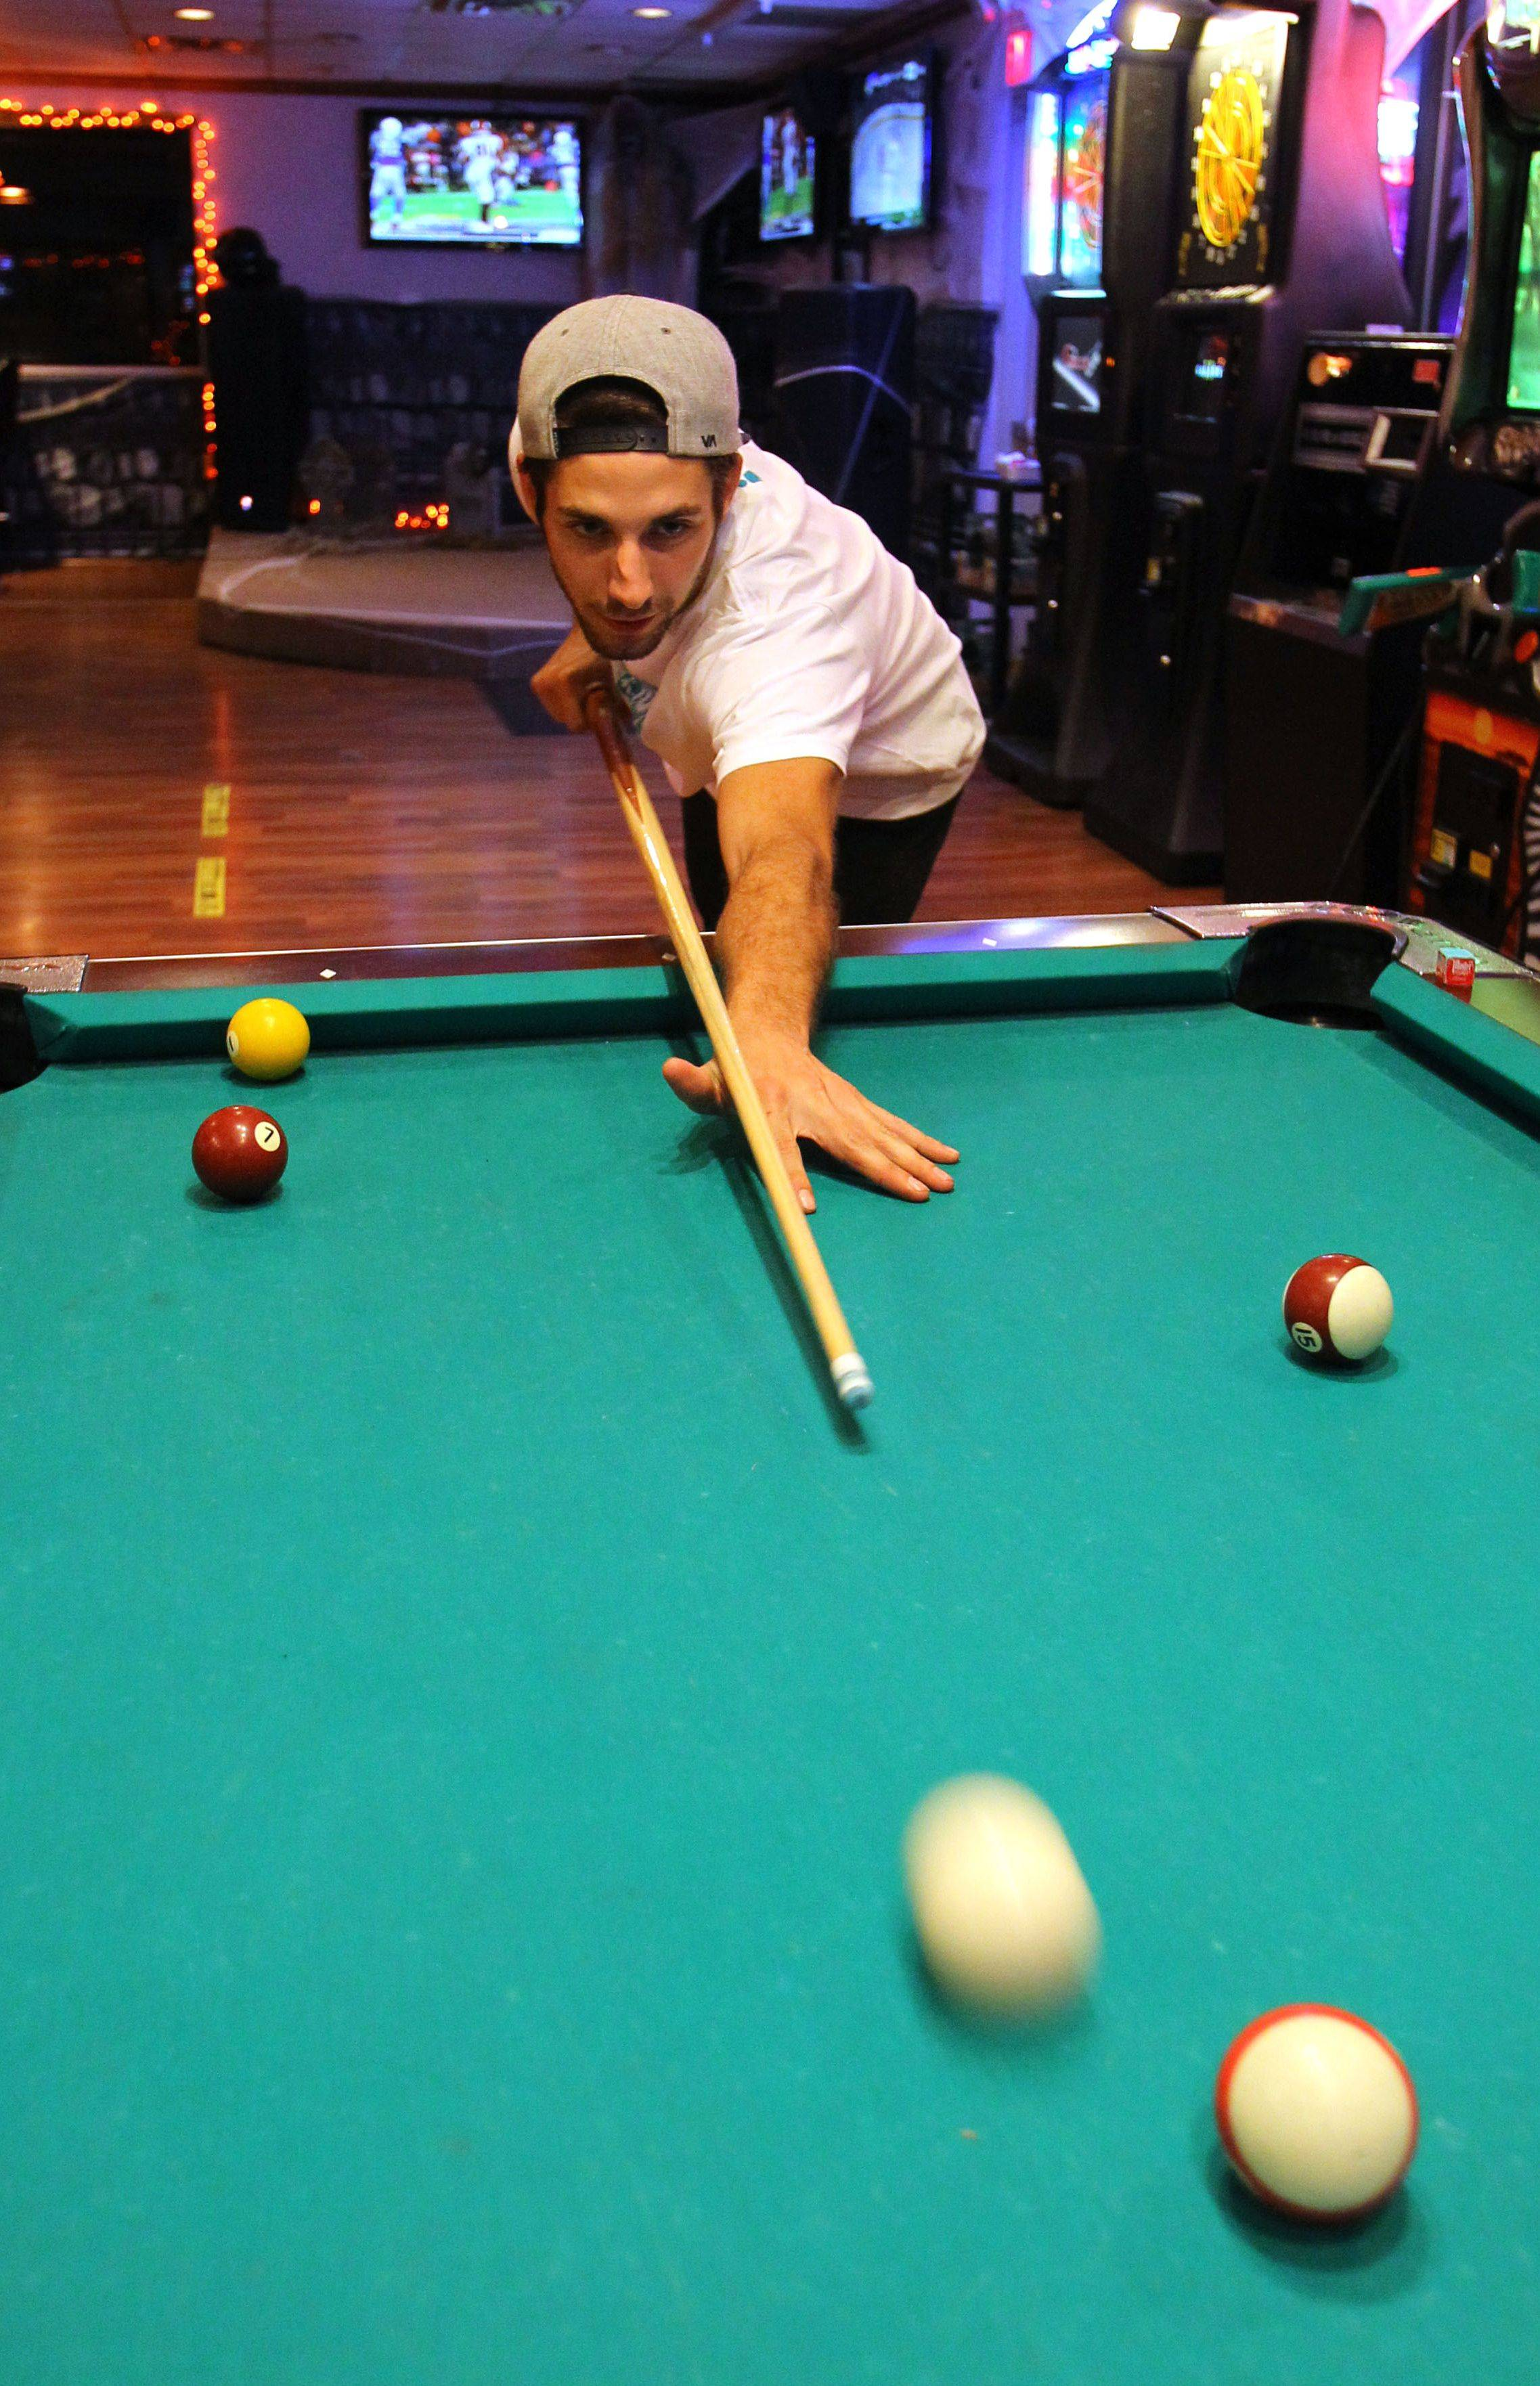 Brett Kidd of Wauconda plays pool at J&D Sports Bar & Grill in Wauconda.